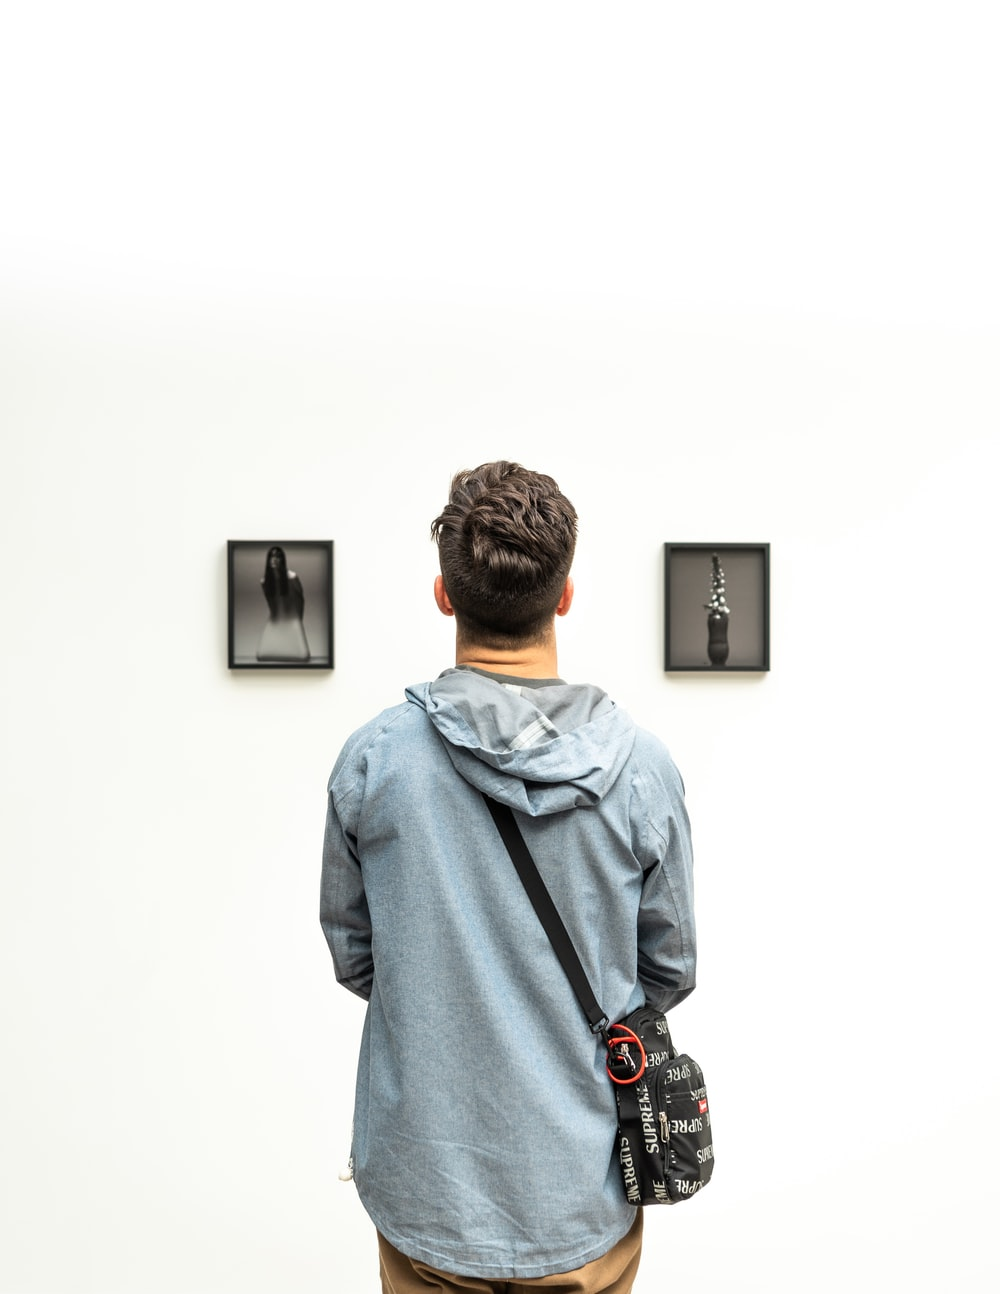 man wearing hoodie looking at artworks